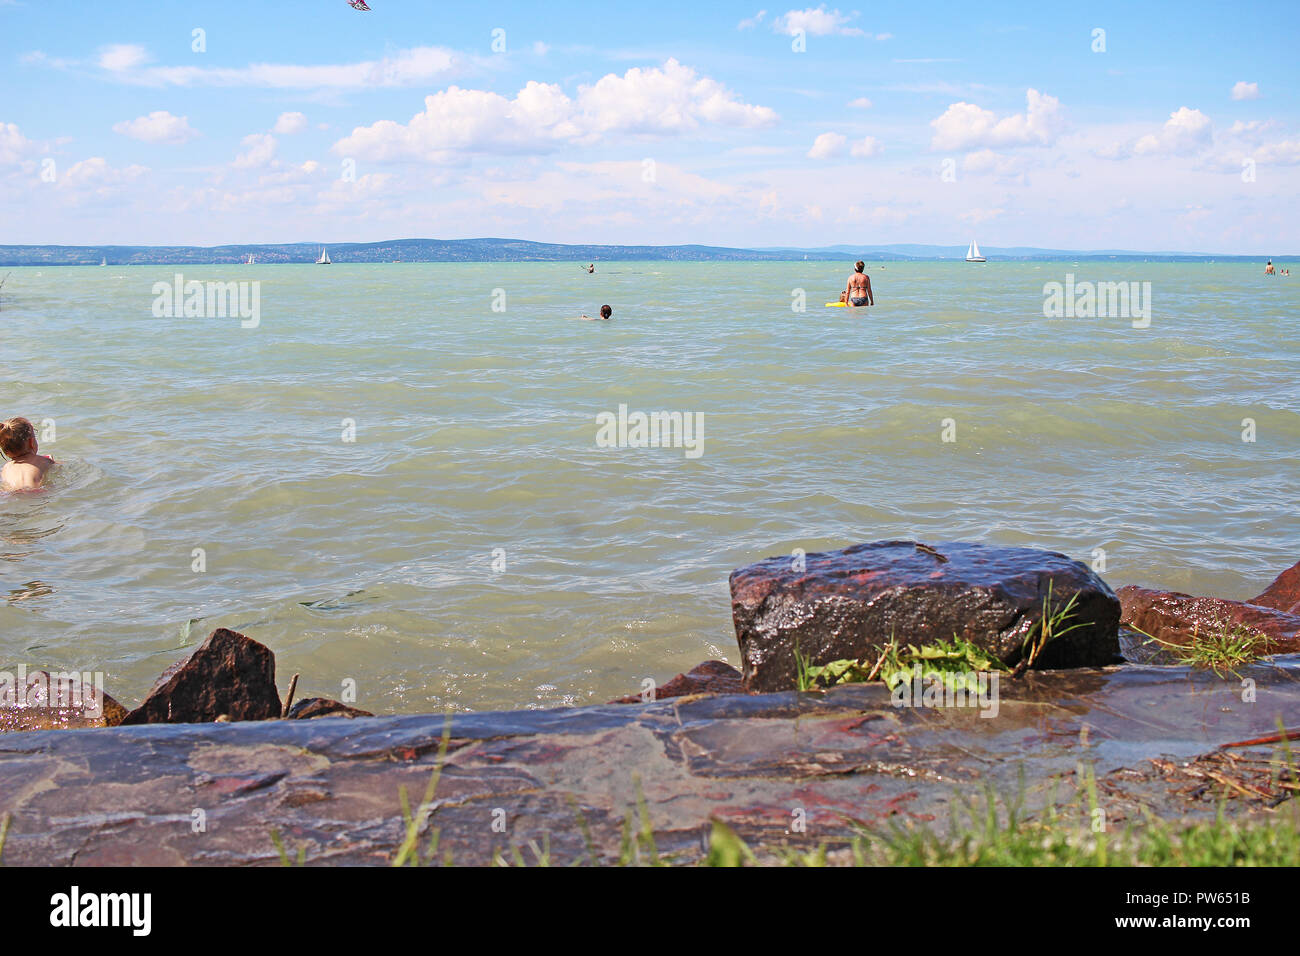 Balaton lake Hungary summer 2018 Europe. Sunny hot day near water. Stock Photo